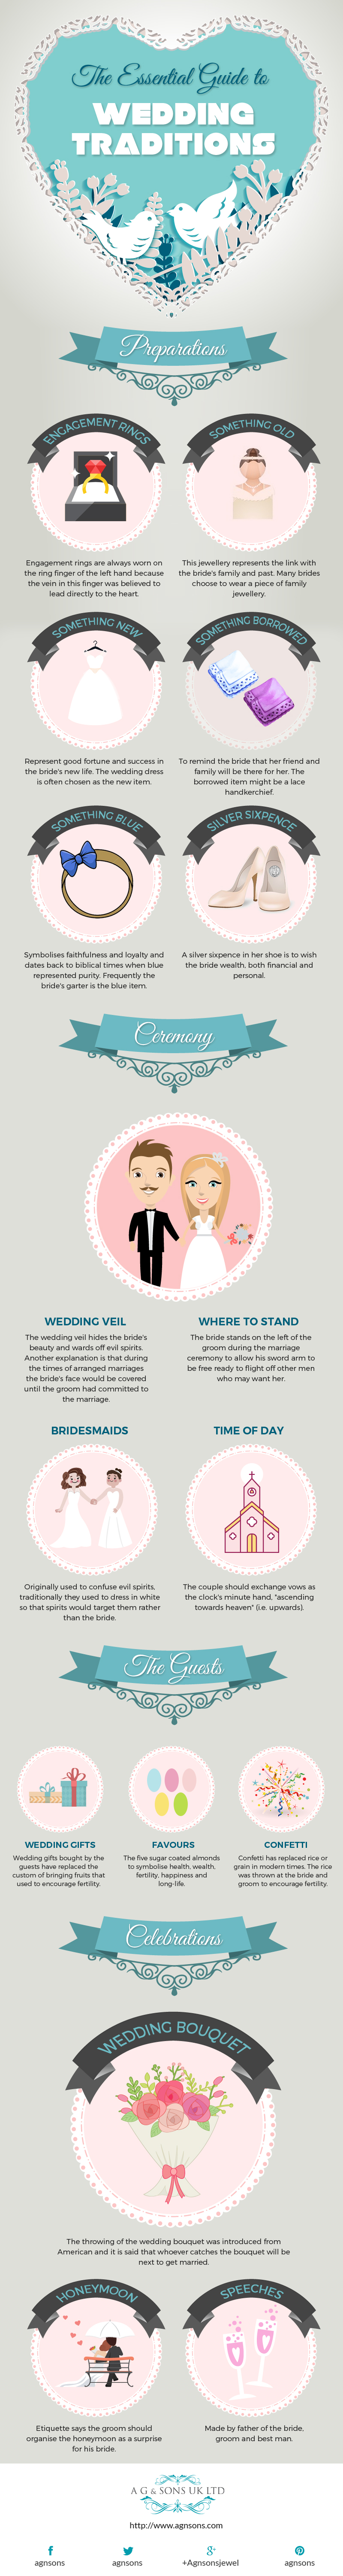 The Essential Guide to Wedding Traditions